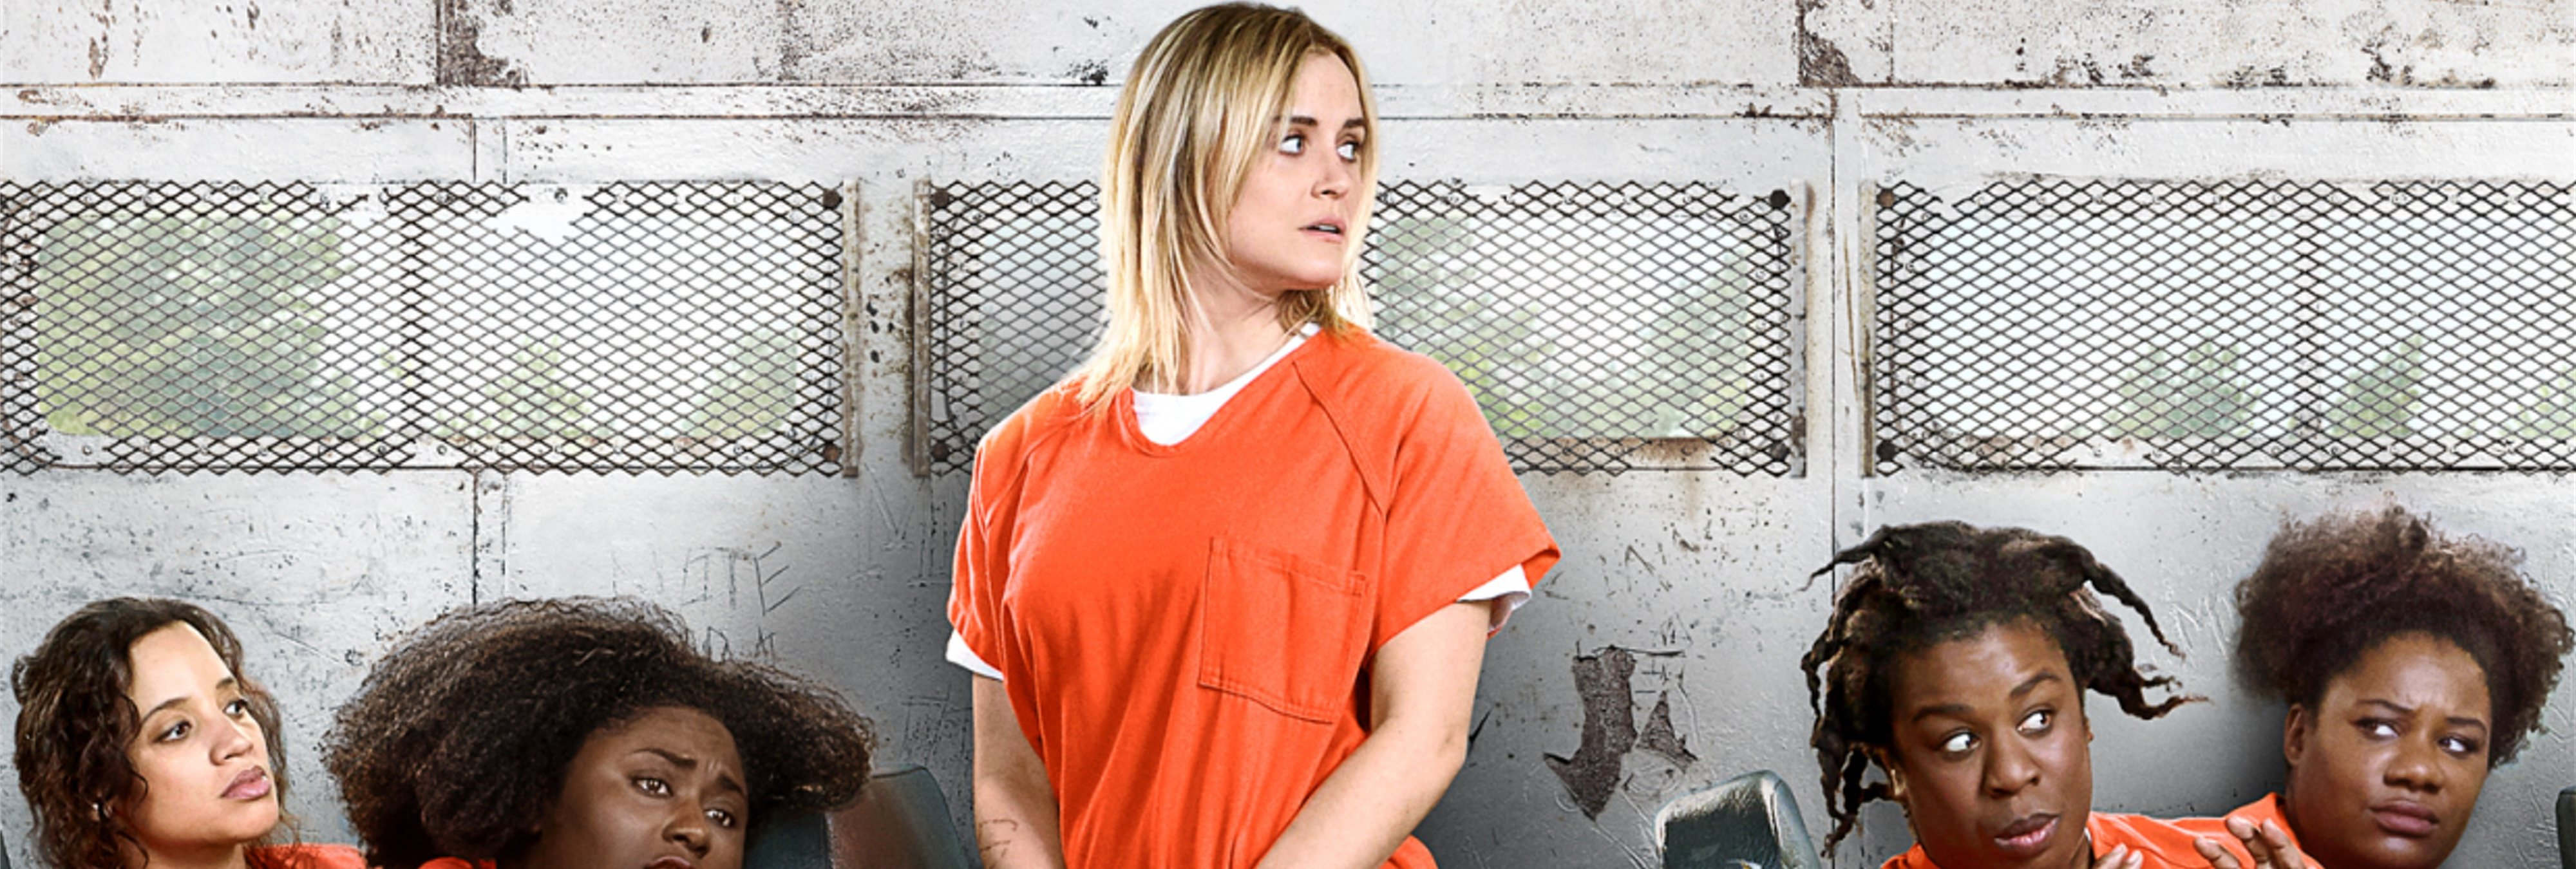 7 razones por las que 'Orange Is The New Black' nos ha cambiado la vida